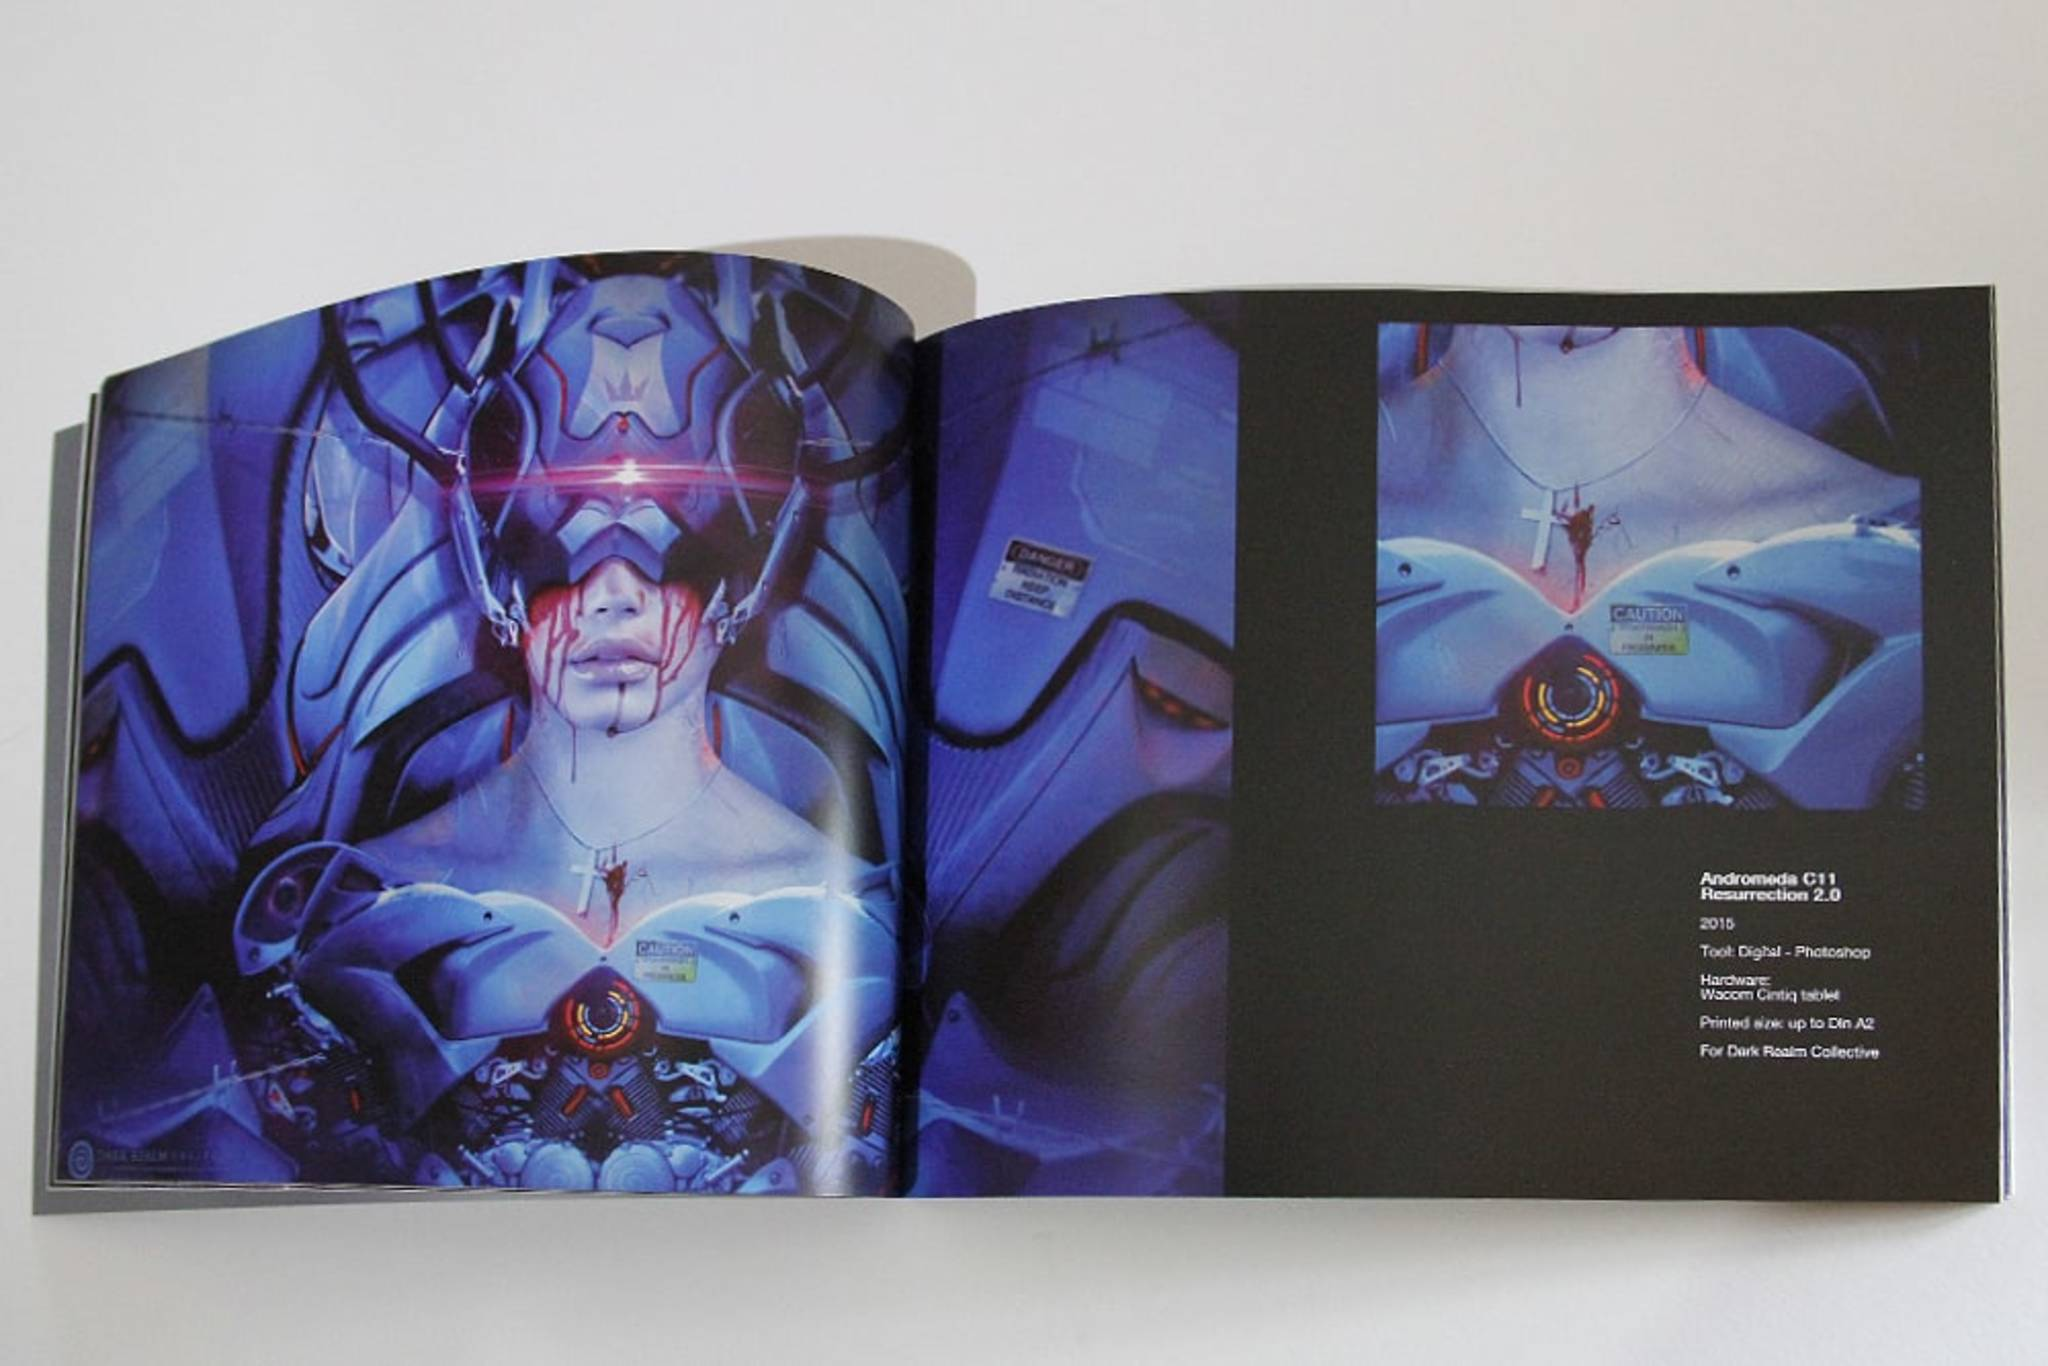 artbook transgenetic metahuman 2